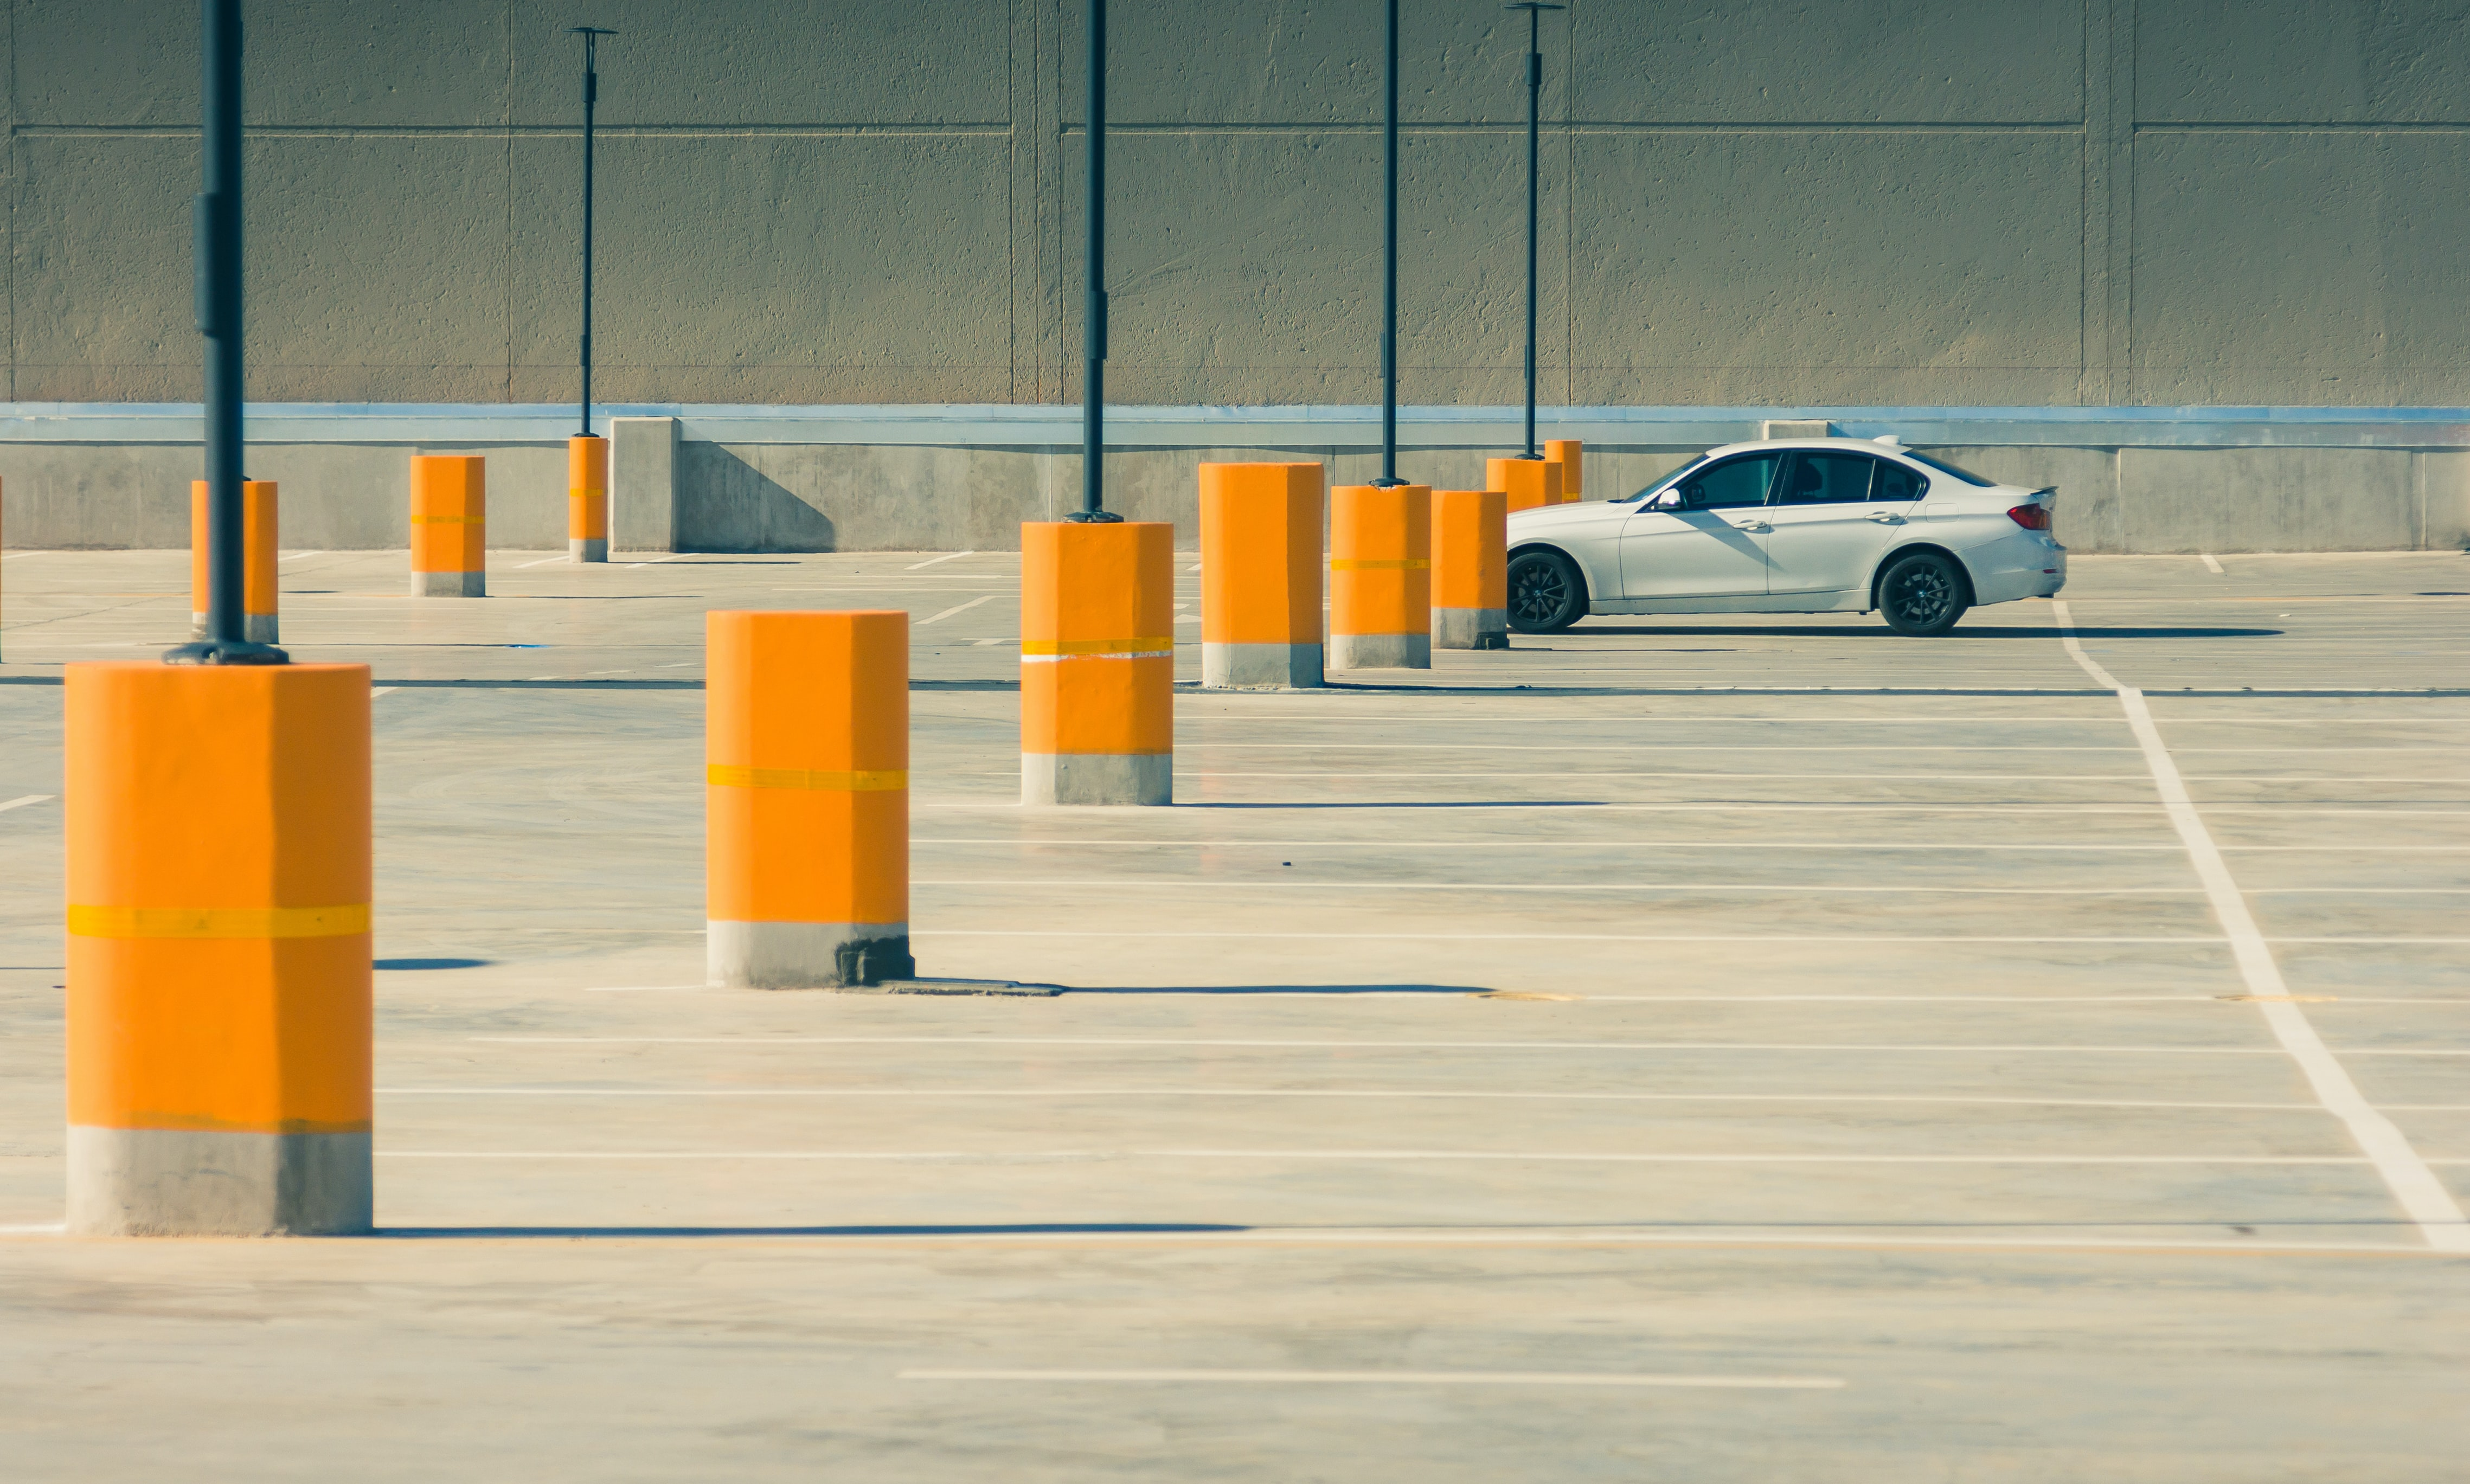 Wide angle shot of a lone white car in a large parking lot.